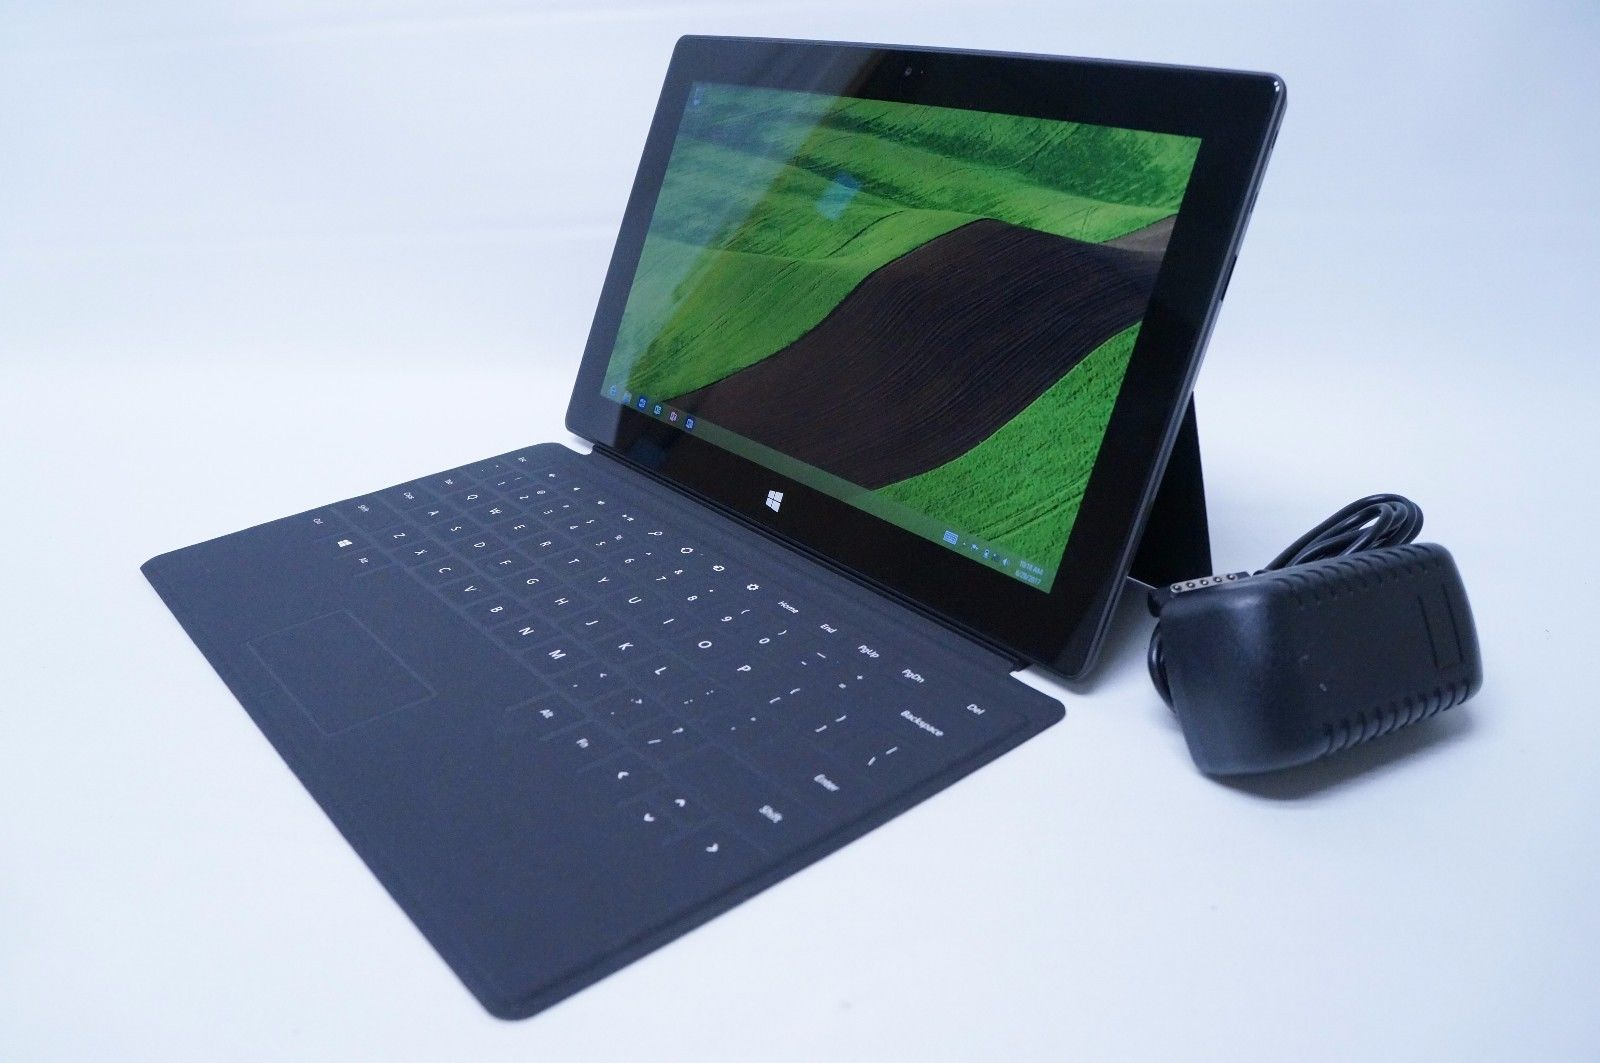 Microsoft Surface RT 64GB Wi-Fi 10 6in w/ Keyboard Dark